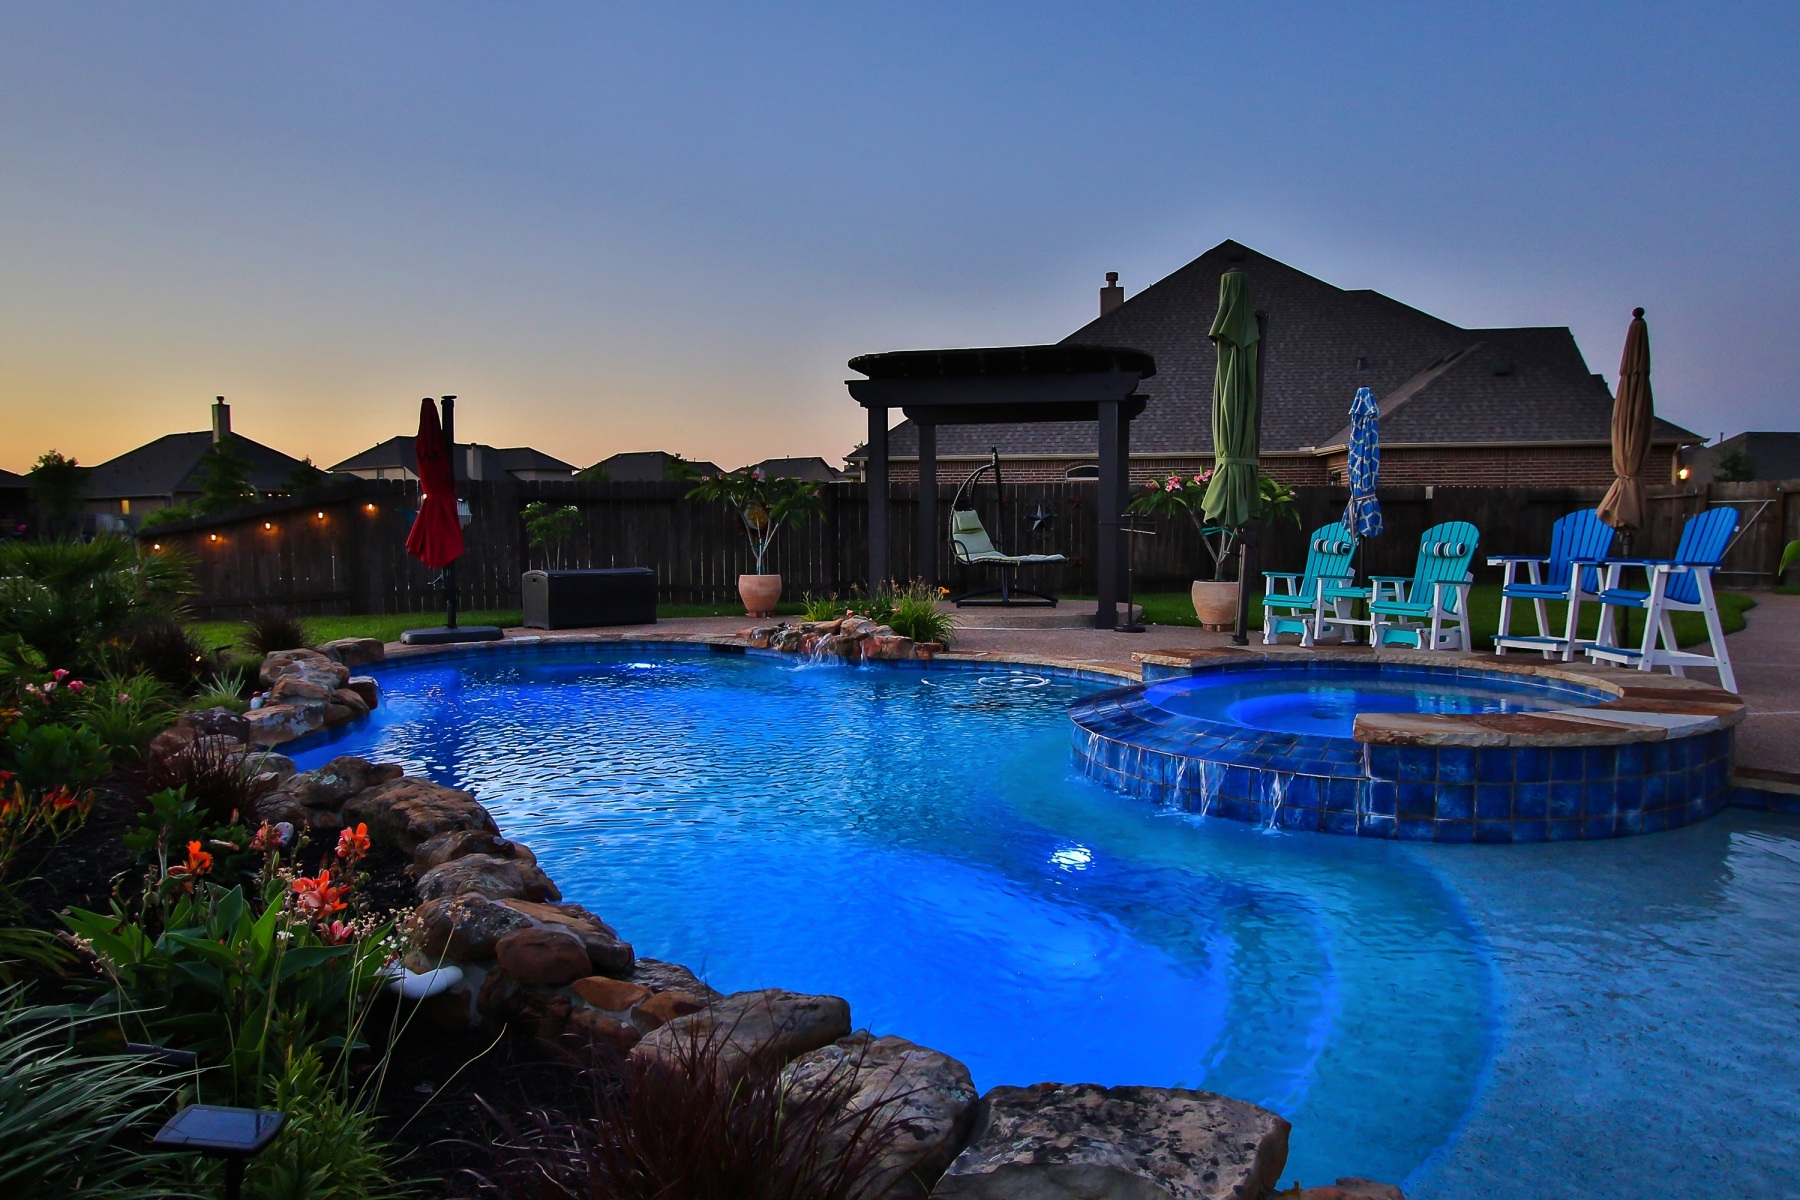 Custom Lit Freeform Pool at Night with Raised Spa & Rock Waterfall